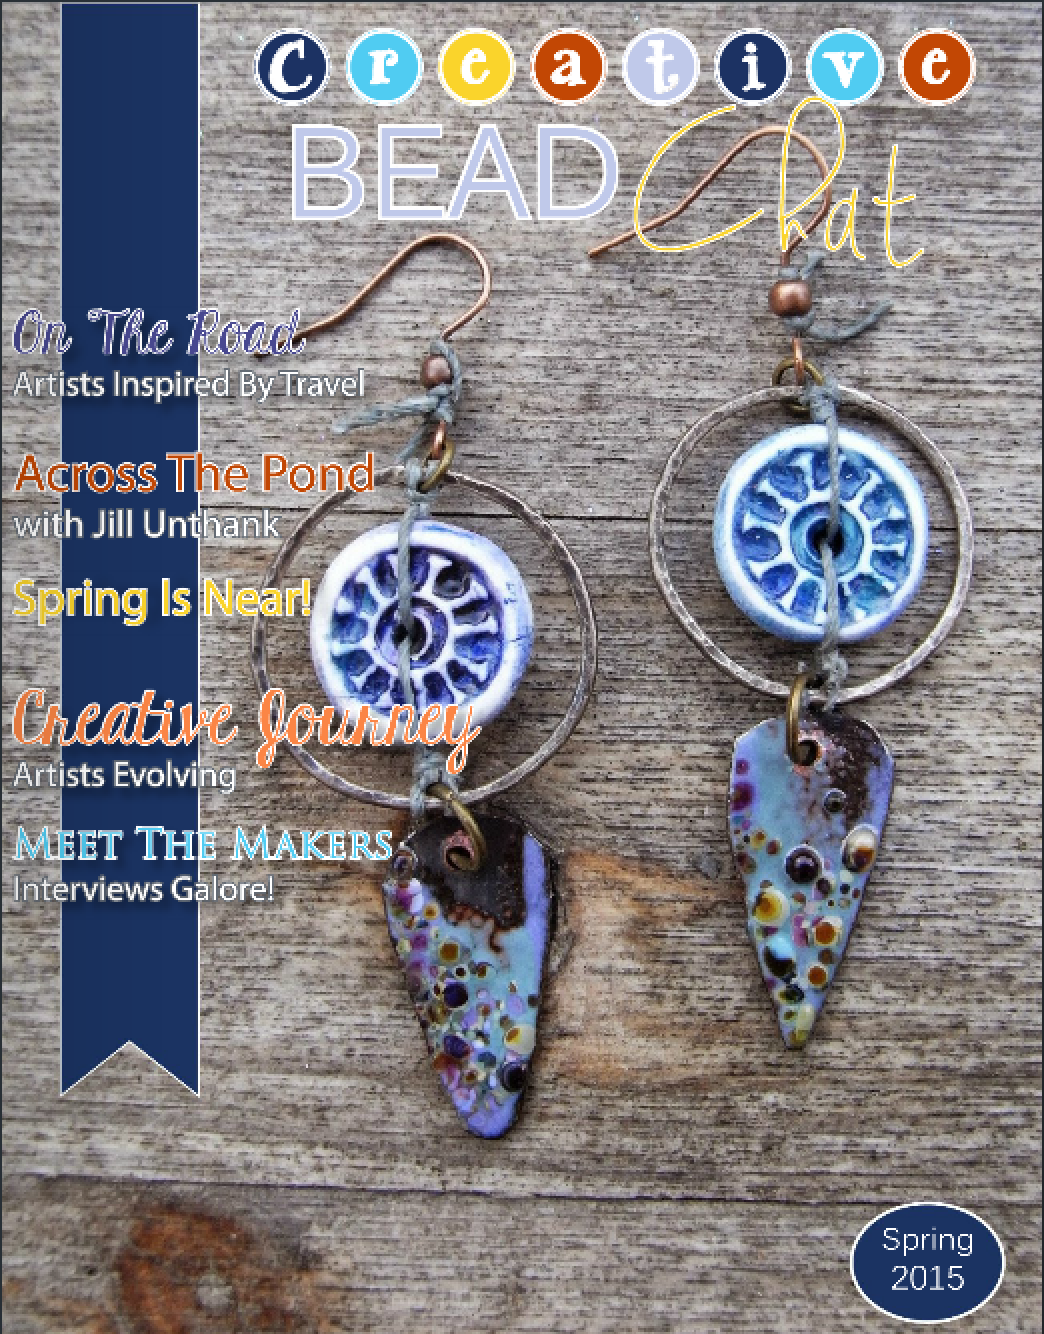 Cover - Spring 2015 issue, Bead Chat magazine